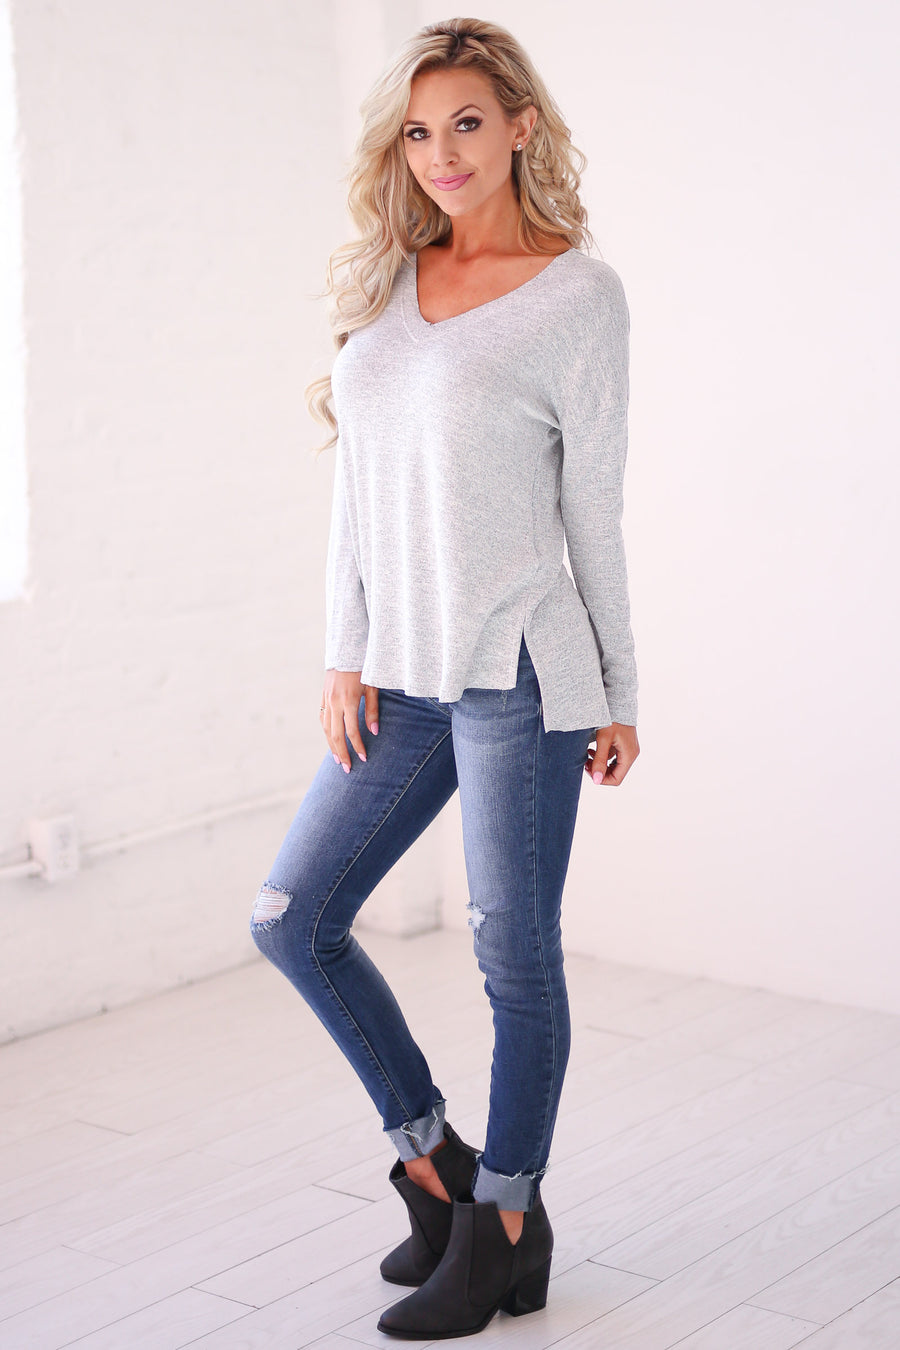 Let the Good Times Roll Top - Heather Grey v-neck long sleeve top, basics, Closet Candy Boutique